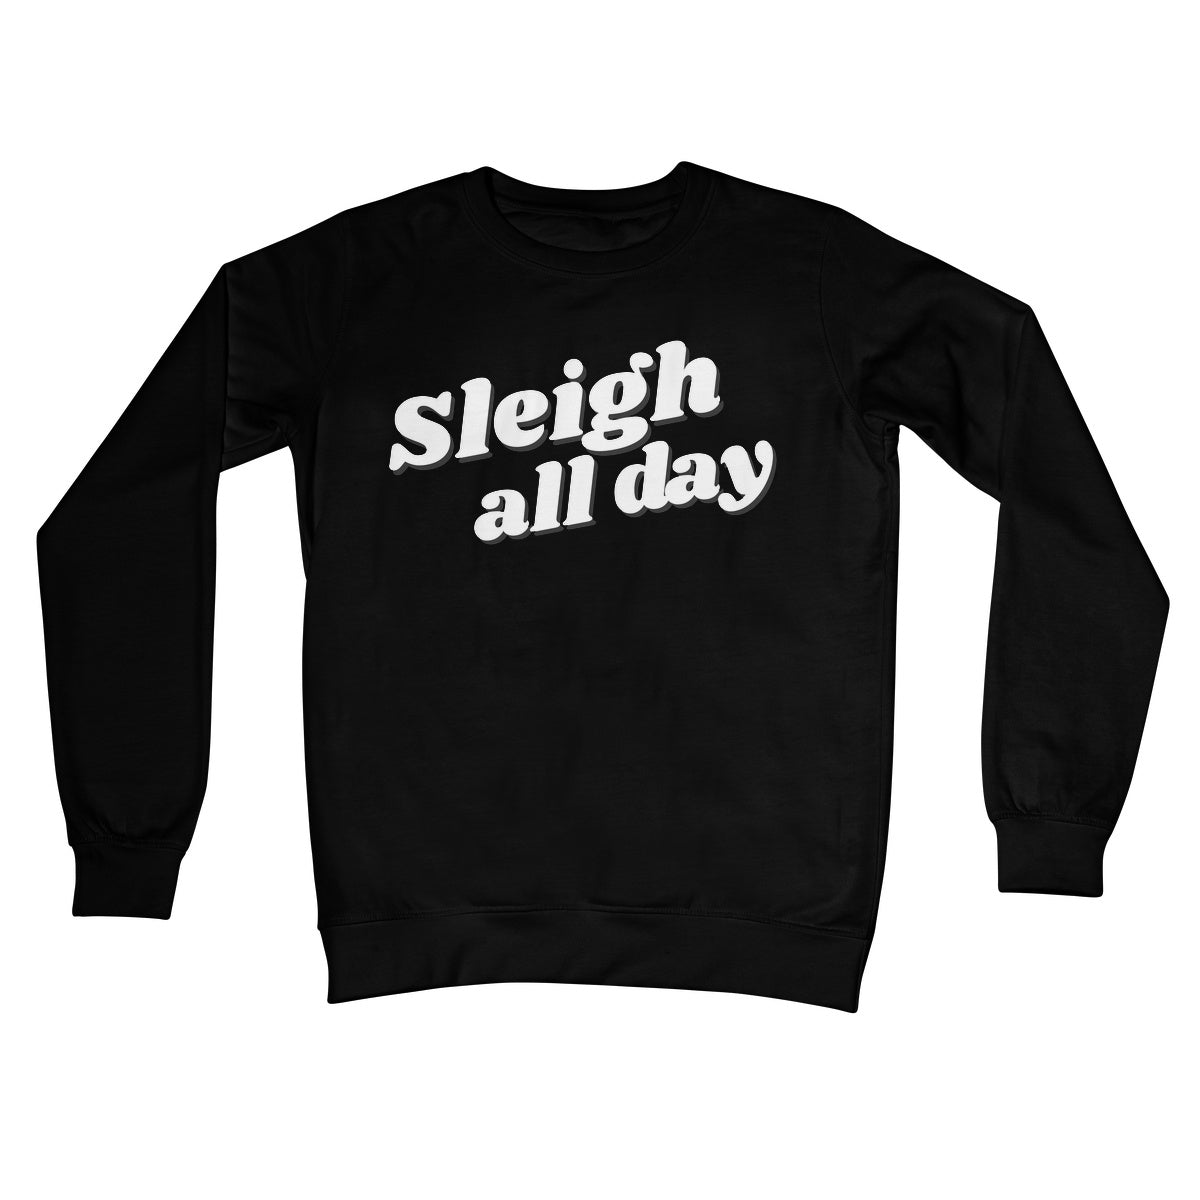 Sleigh All Day Christmas Xmas Jumper Slay Funny Feminist Gift Text Style Crew Neck Sweatshirt